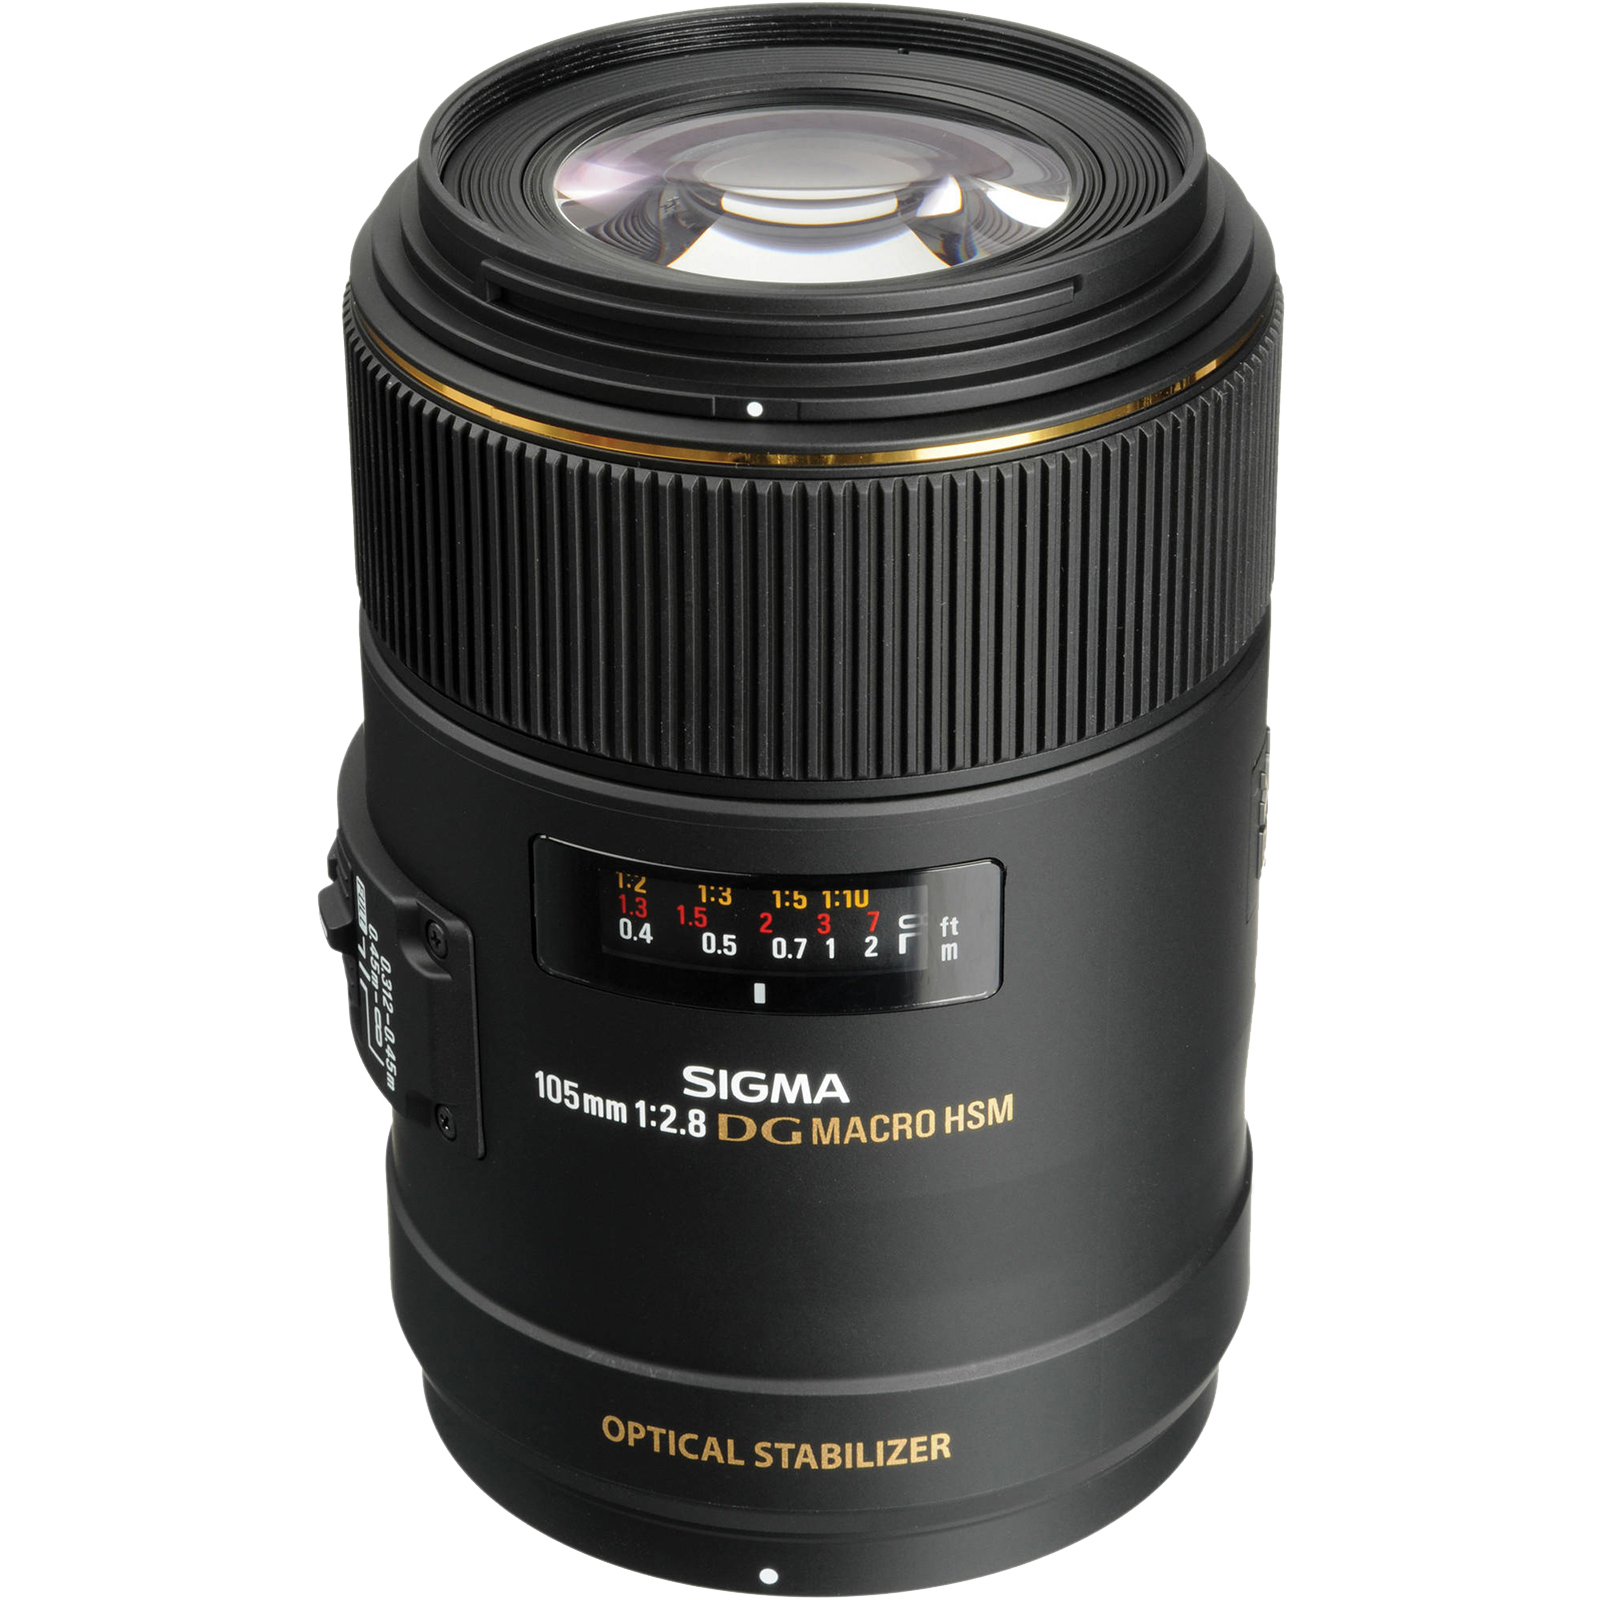 58mm 043x Altura Photo Professional Hd Wide Angle Lens W Macro Portion For Canon Eos Rebel Camera Dslr T6s T6i T5i T5 T4i T3i T3 Sl1 1100d 700d